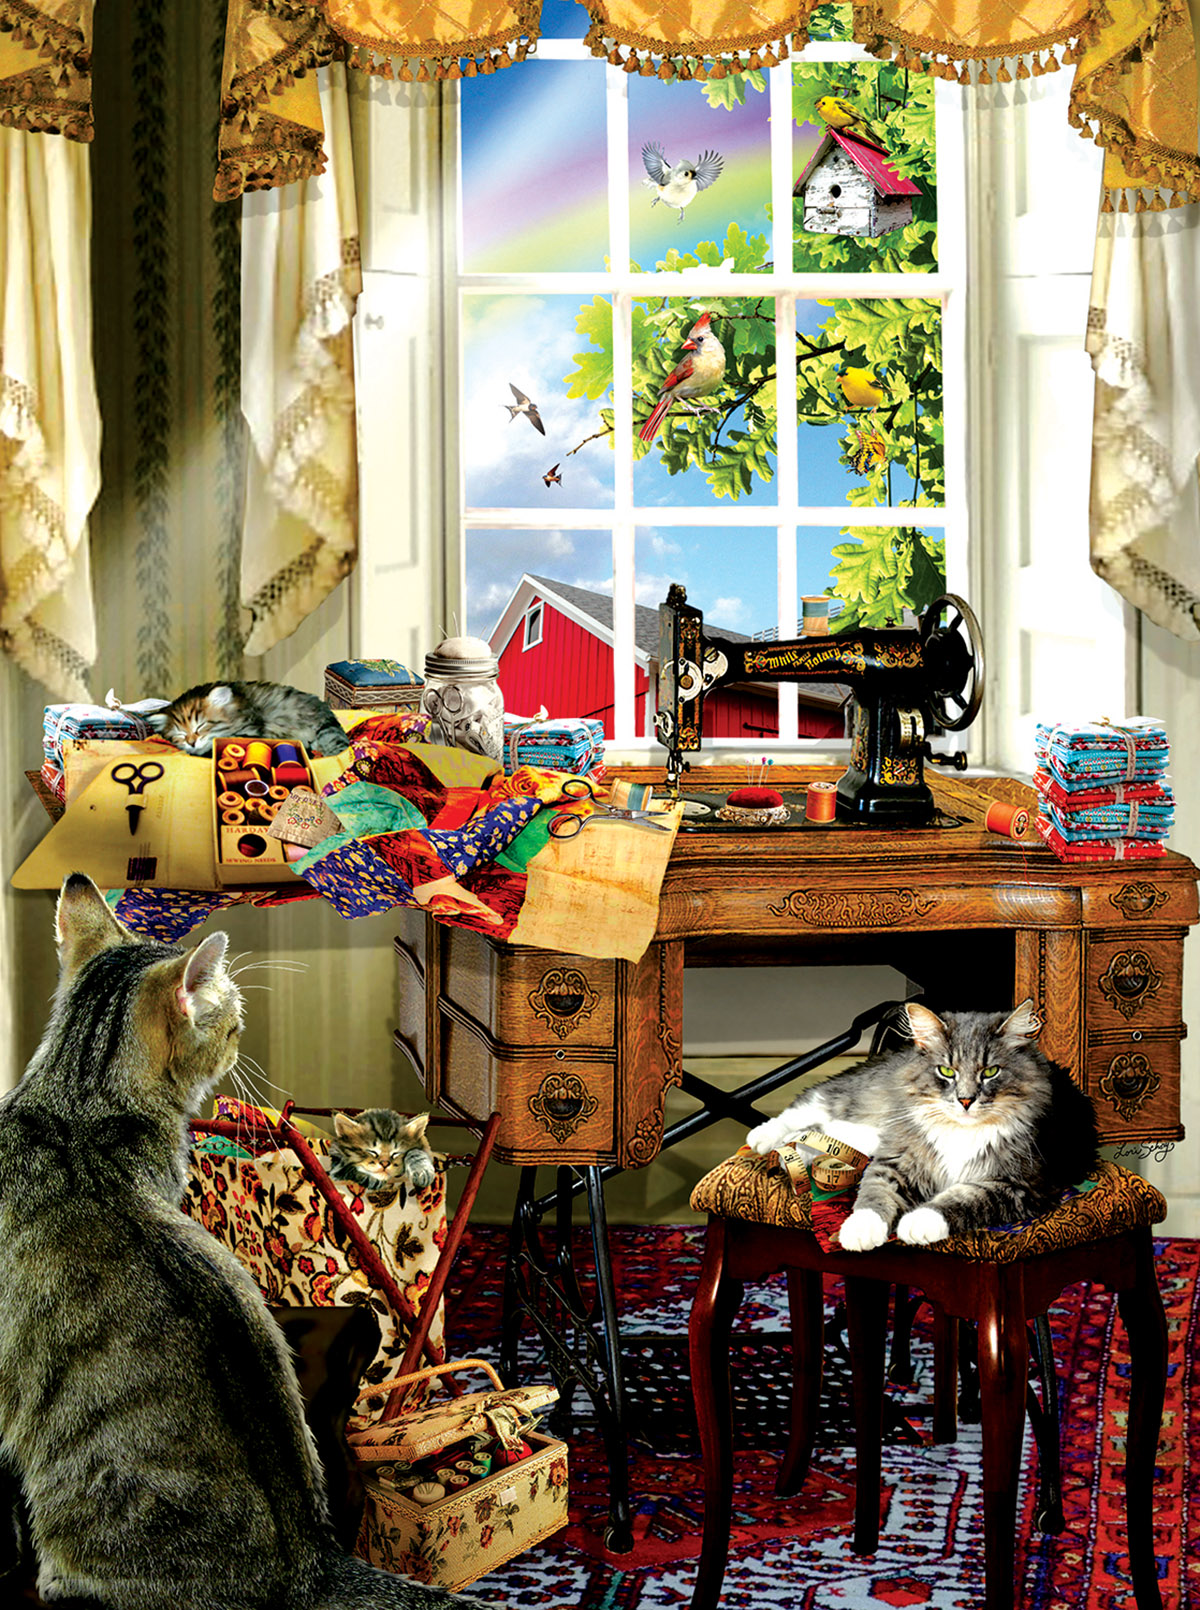 lori-schory-the-sewing-room